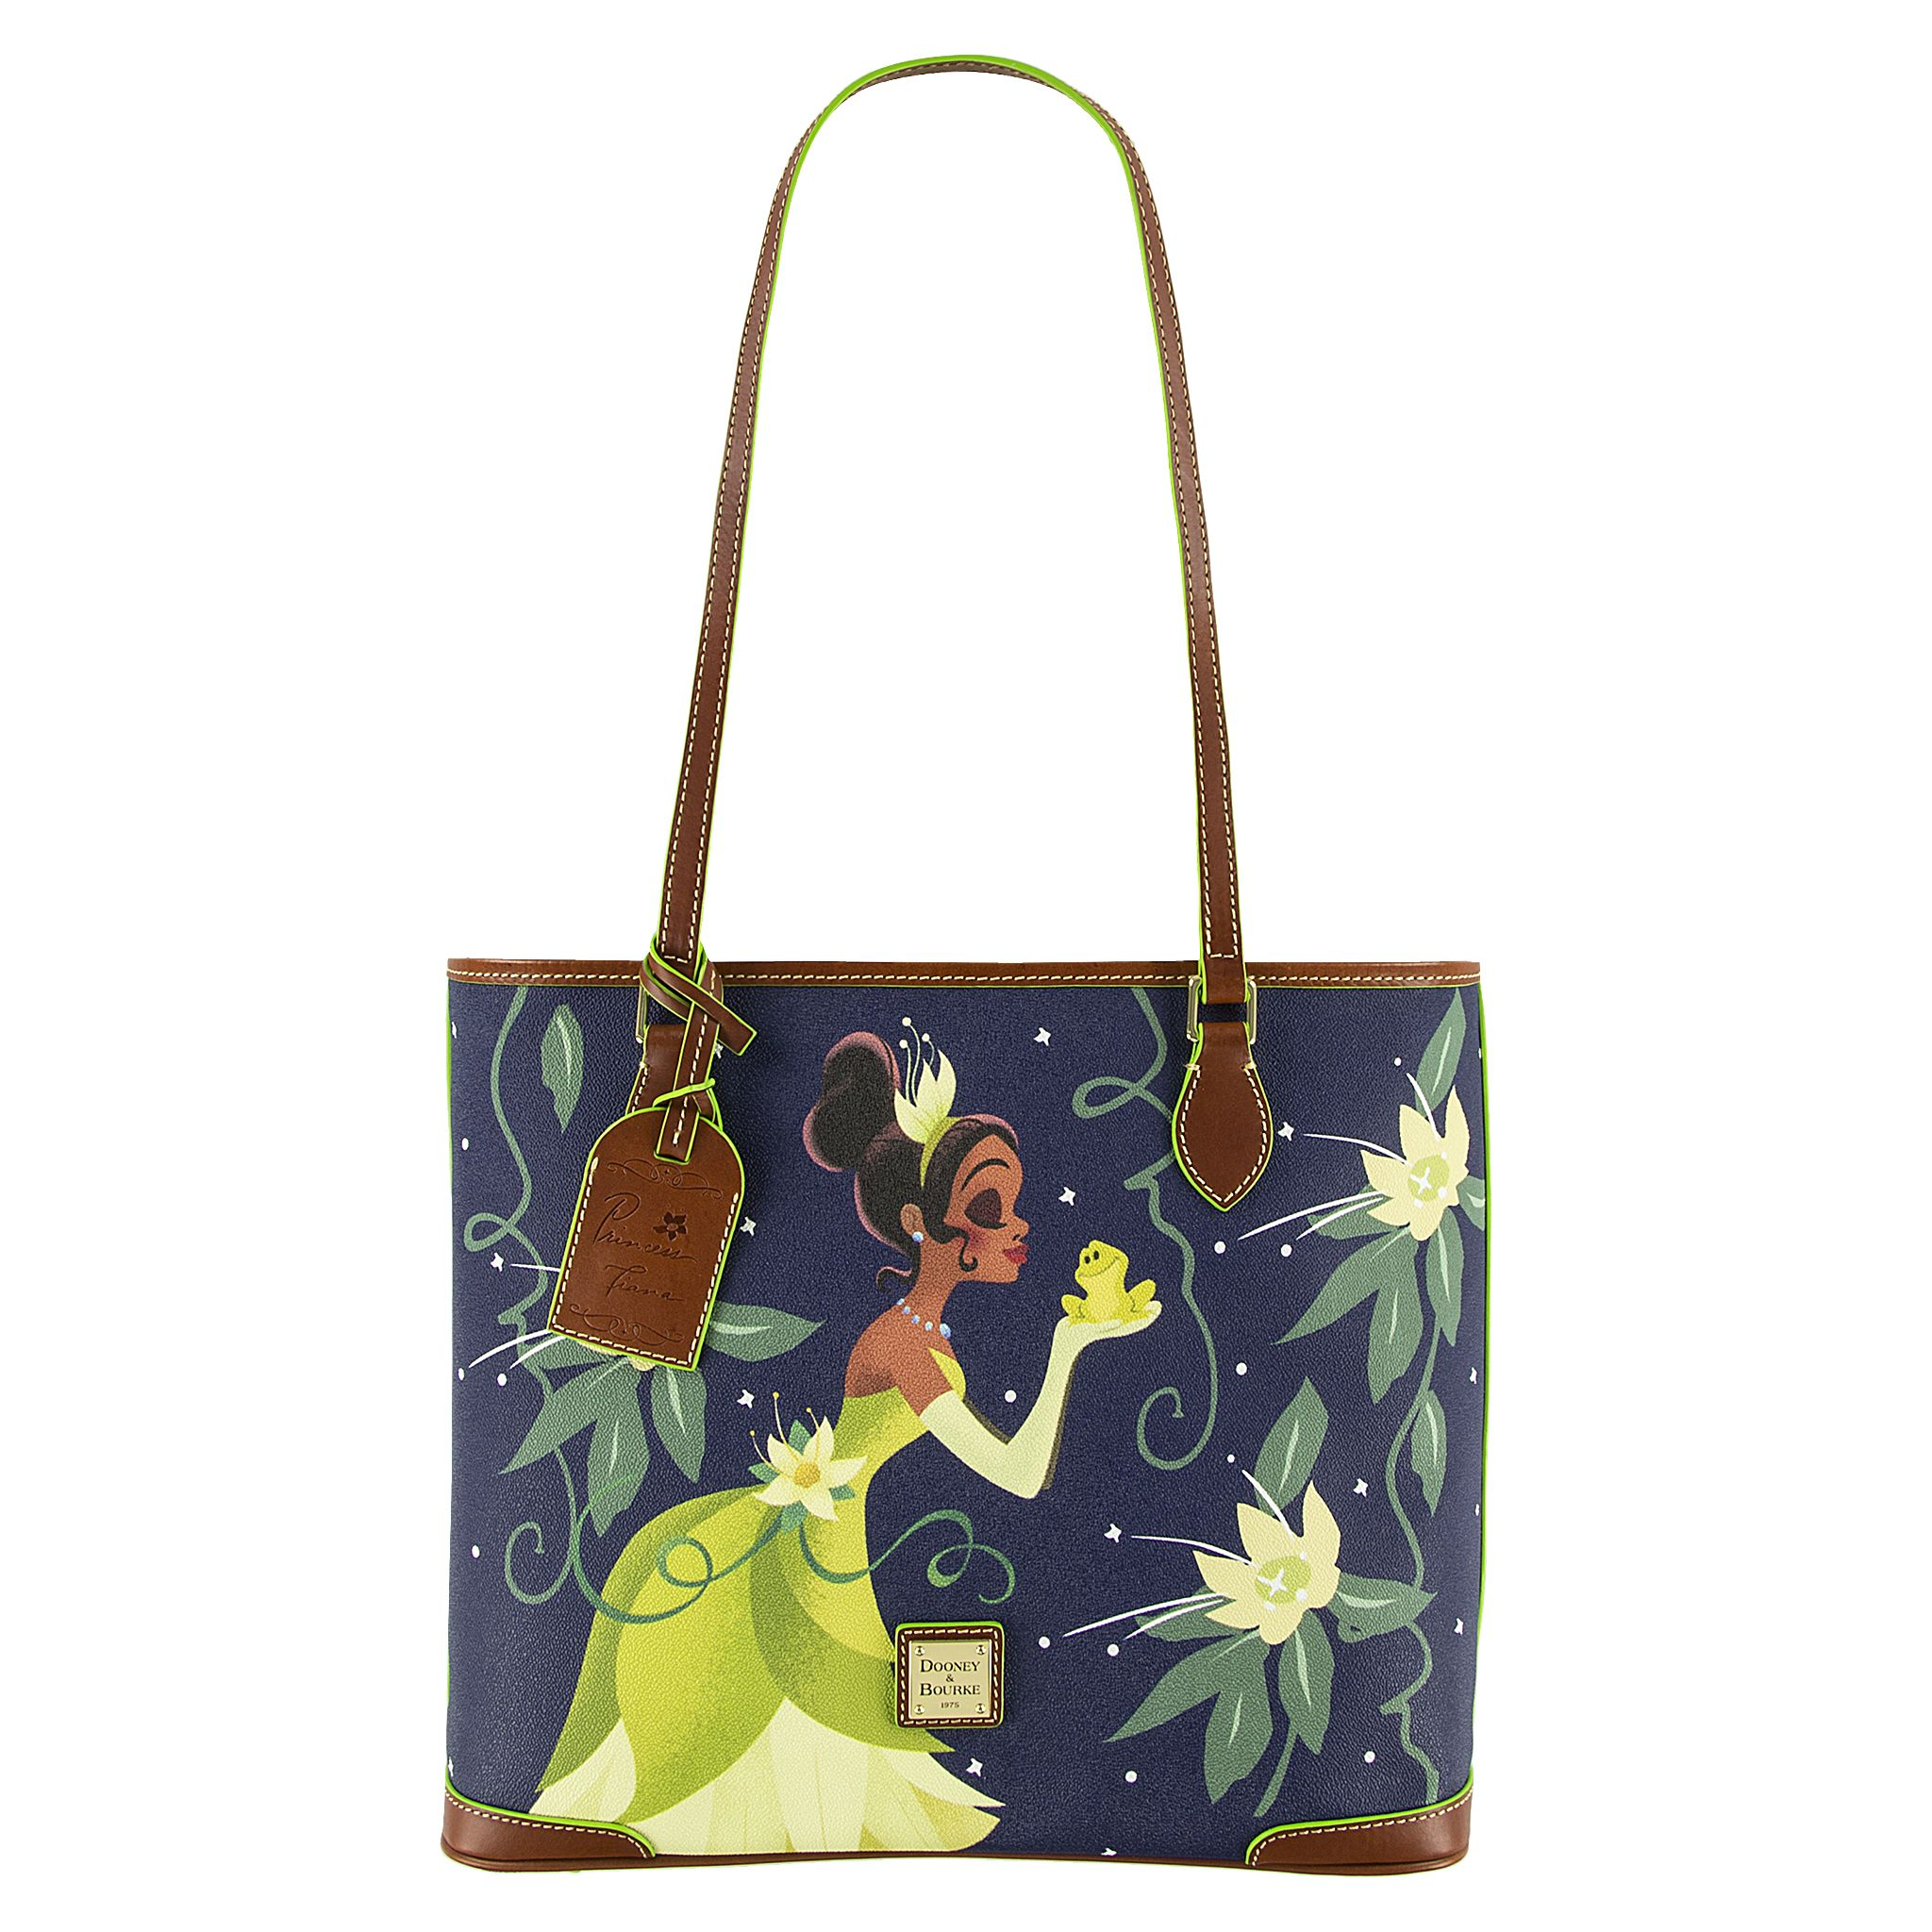 ea05d0415f8 Check out the Silhouettes For the 2 New Disney Dooney and Bourke Bags Being  Released This July!